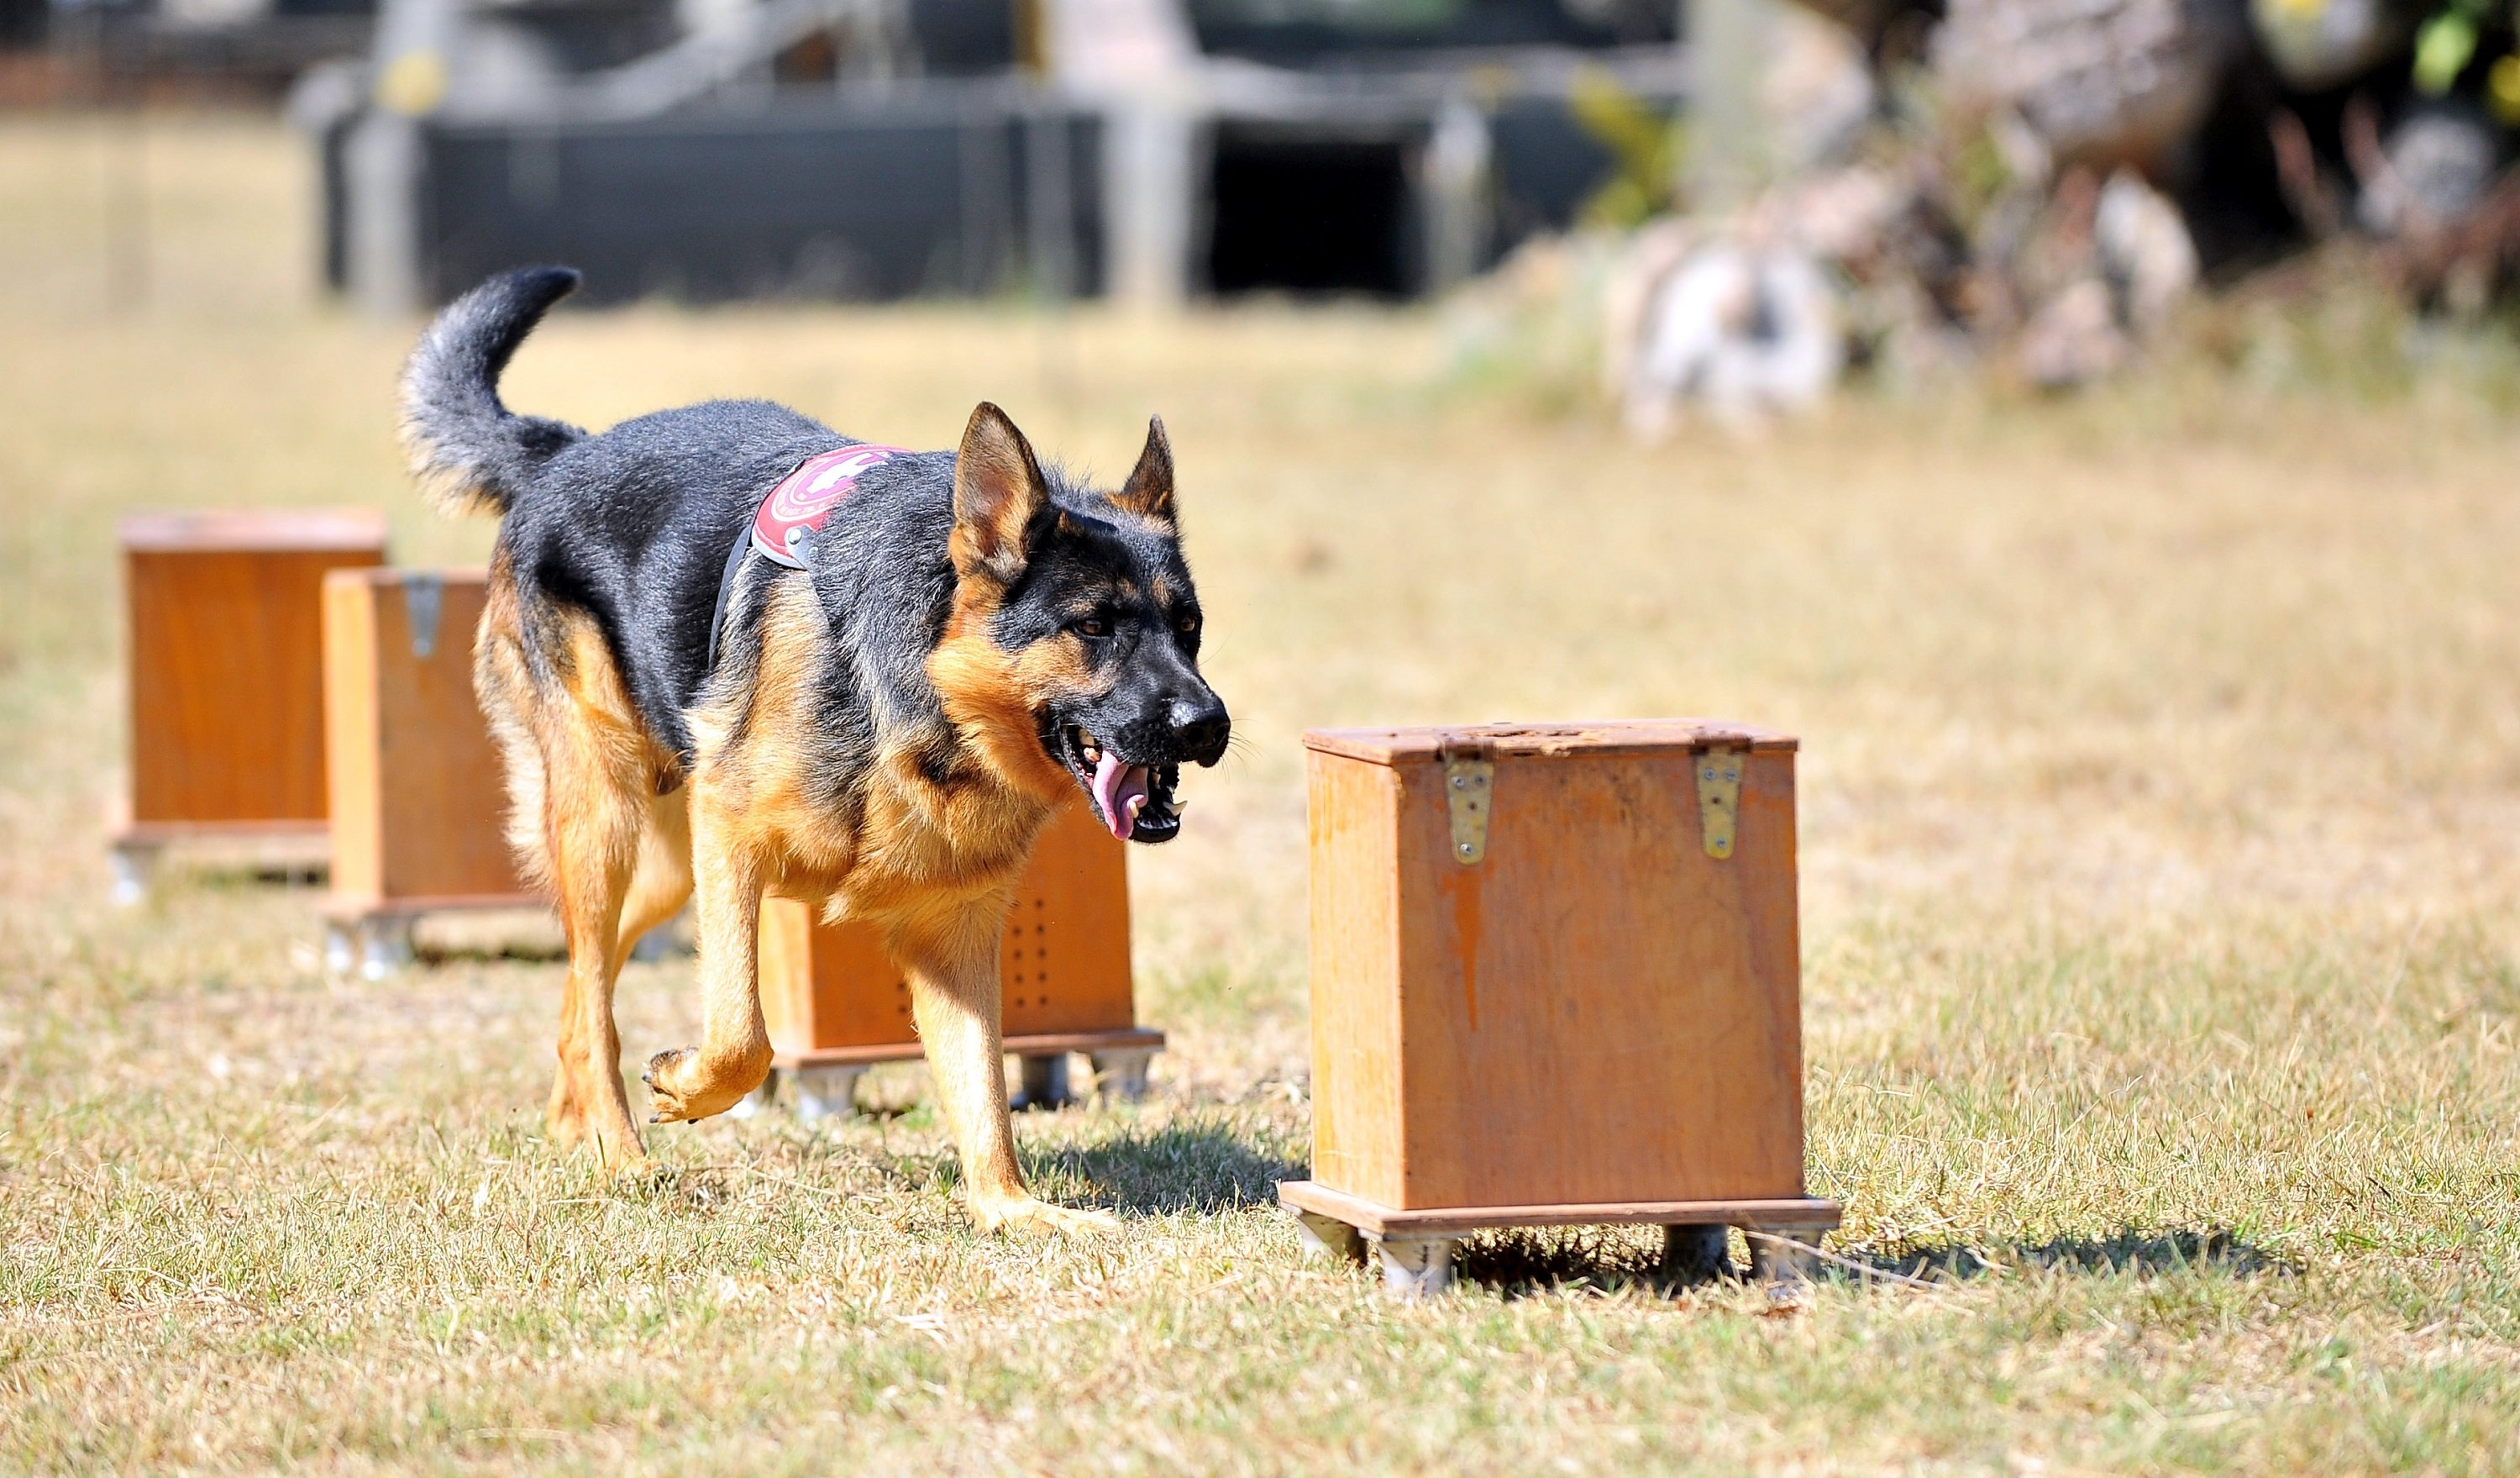 Turkish Armed Forces dogs get ruff training for tough missions